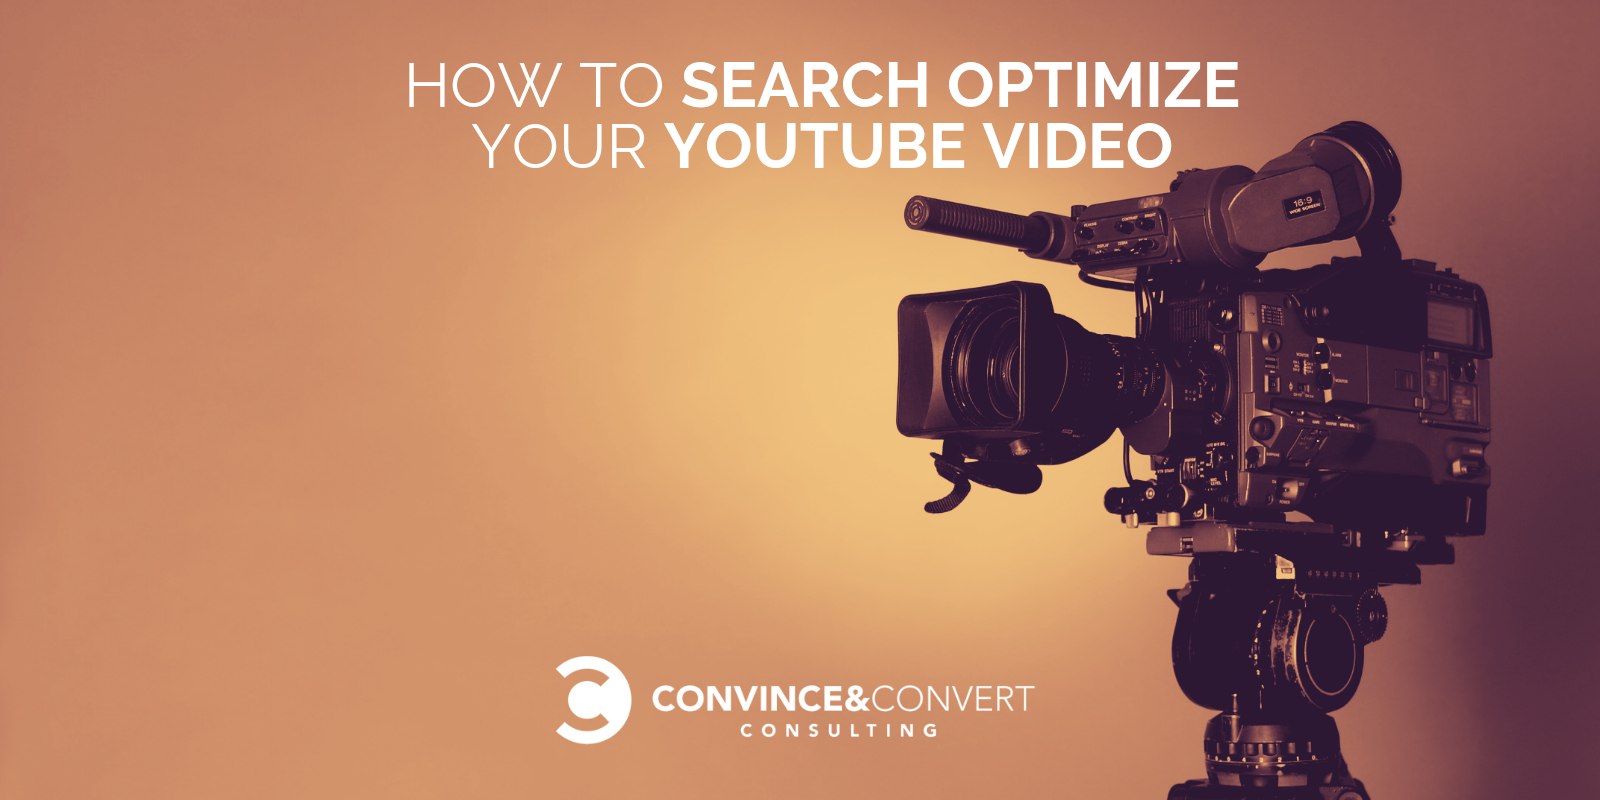 How to Search Optimize Your YouTube Video